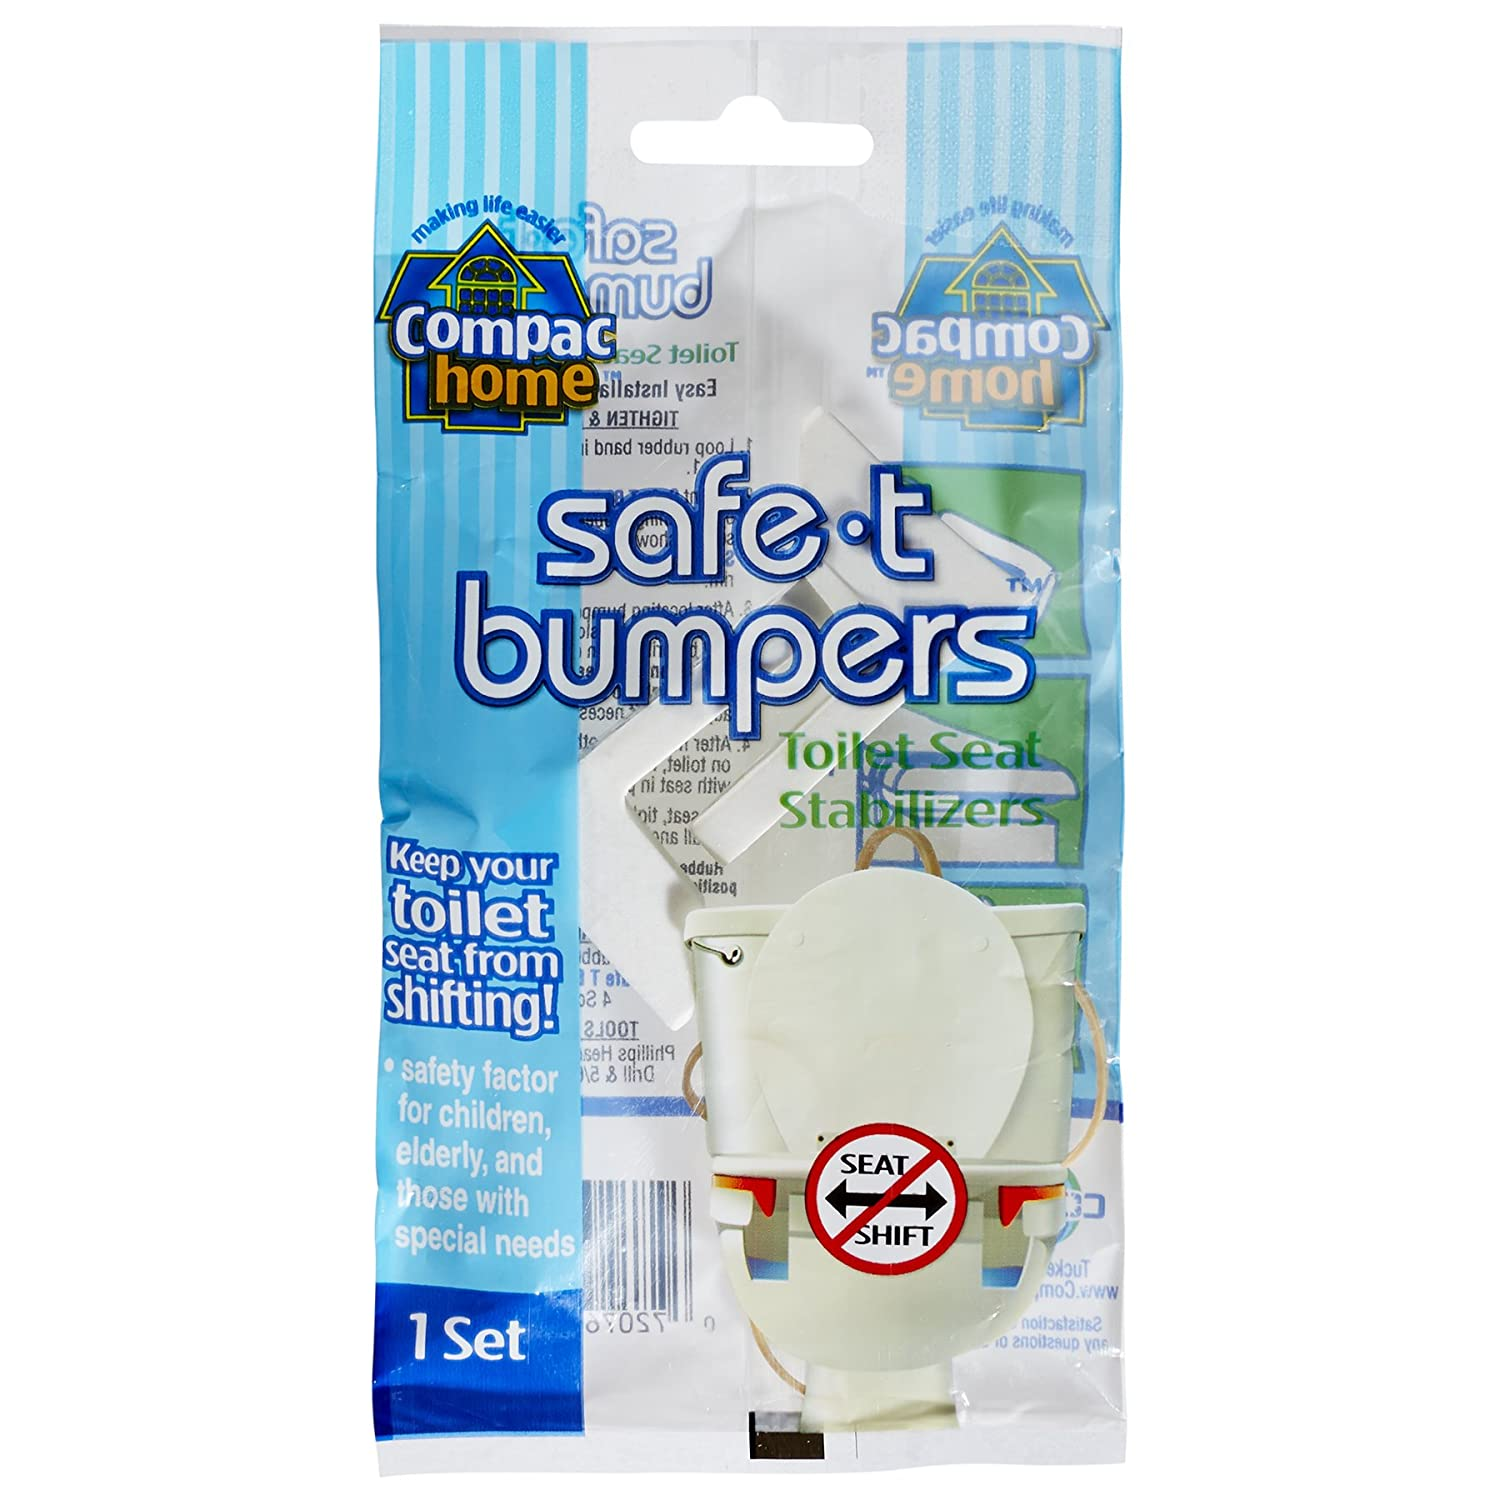 Compac Safe-T-Bumpers Toilet Seat Stabilizers Compac Industries Inc. 11200